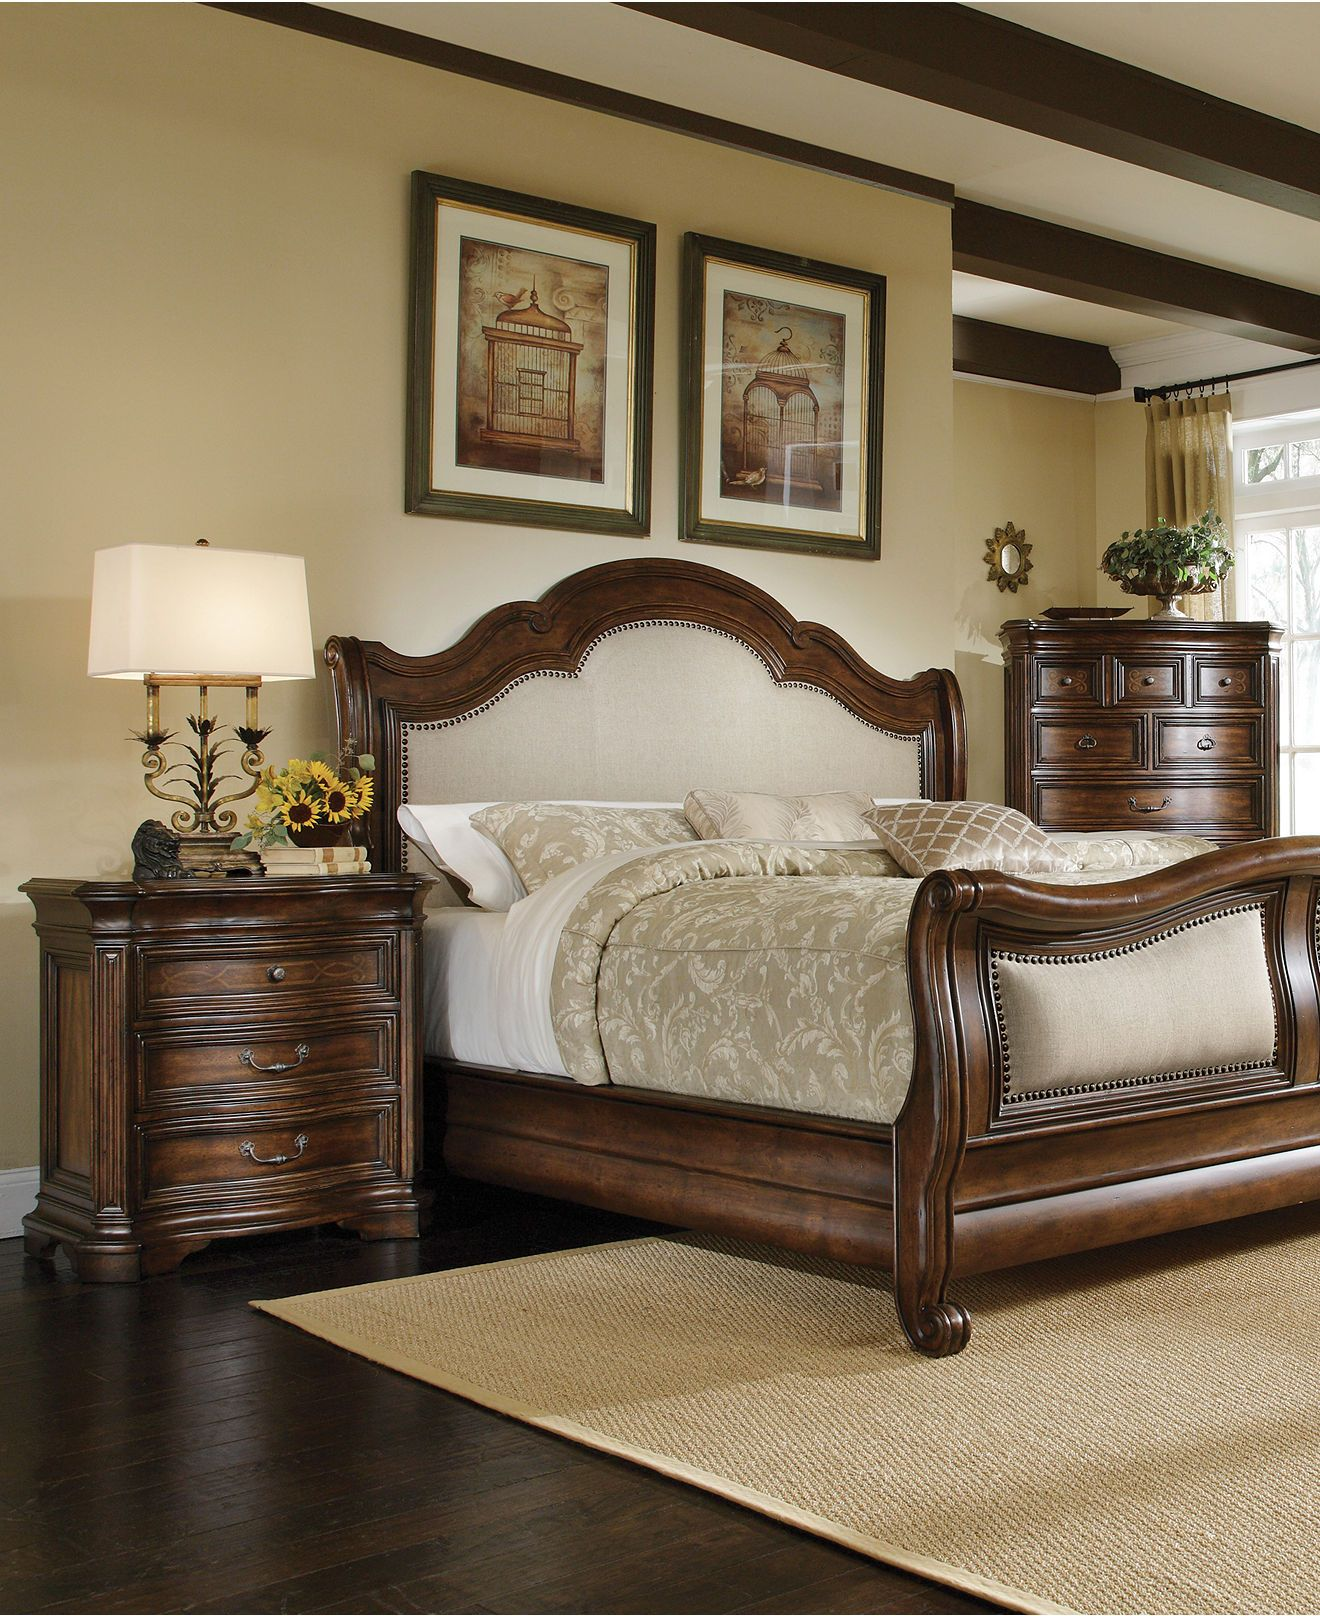 Bed room Dark warm wood with neutrals